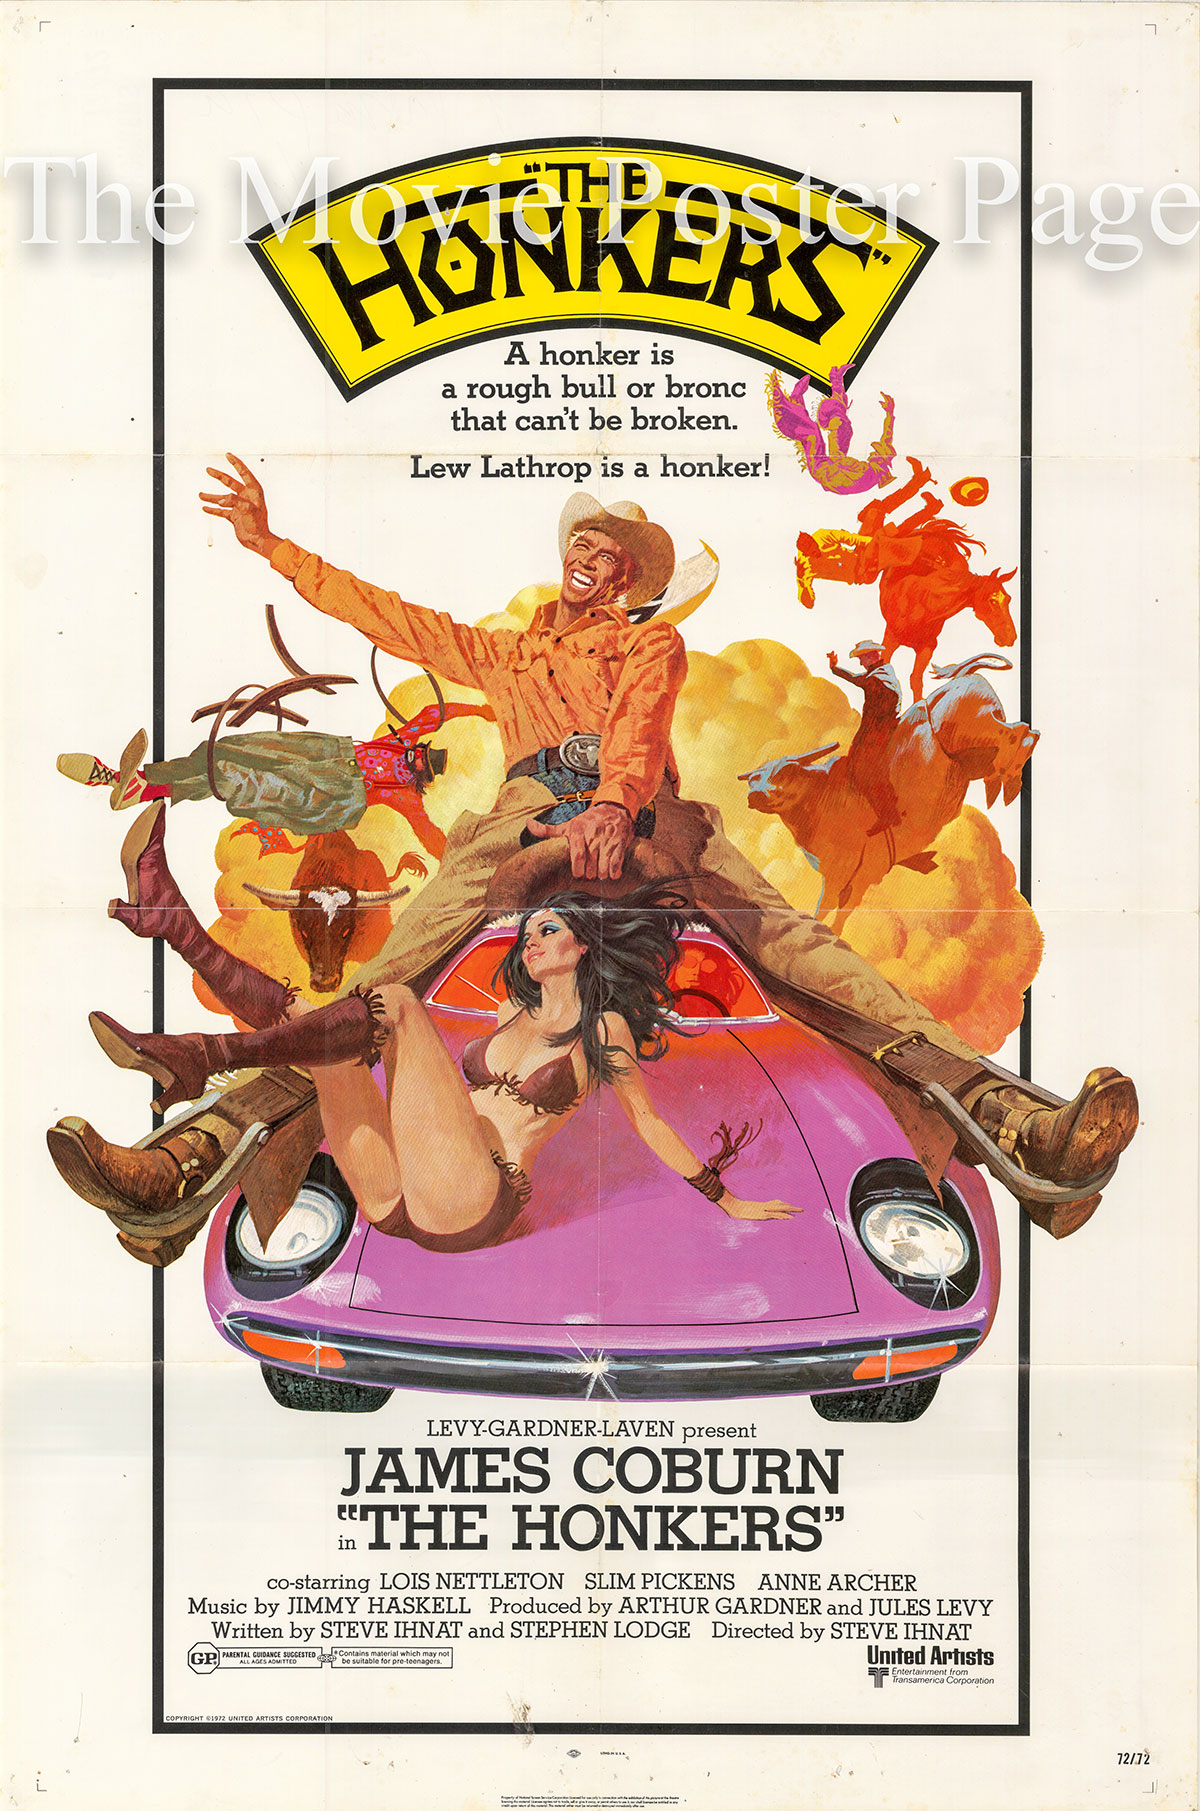 Pictured is a US one-sheet promotional poster for the 1972 Steve Ihnat film The Honkers starring James Coburn.